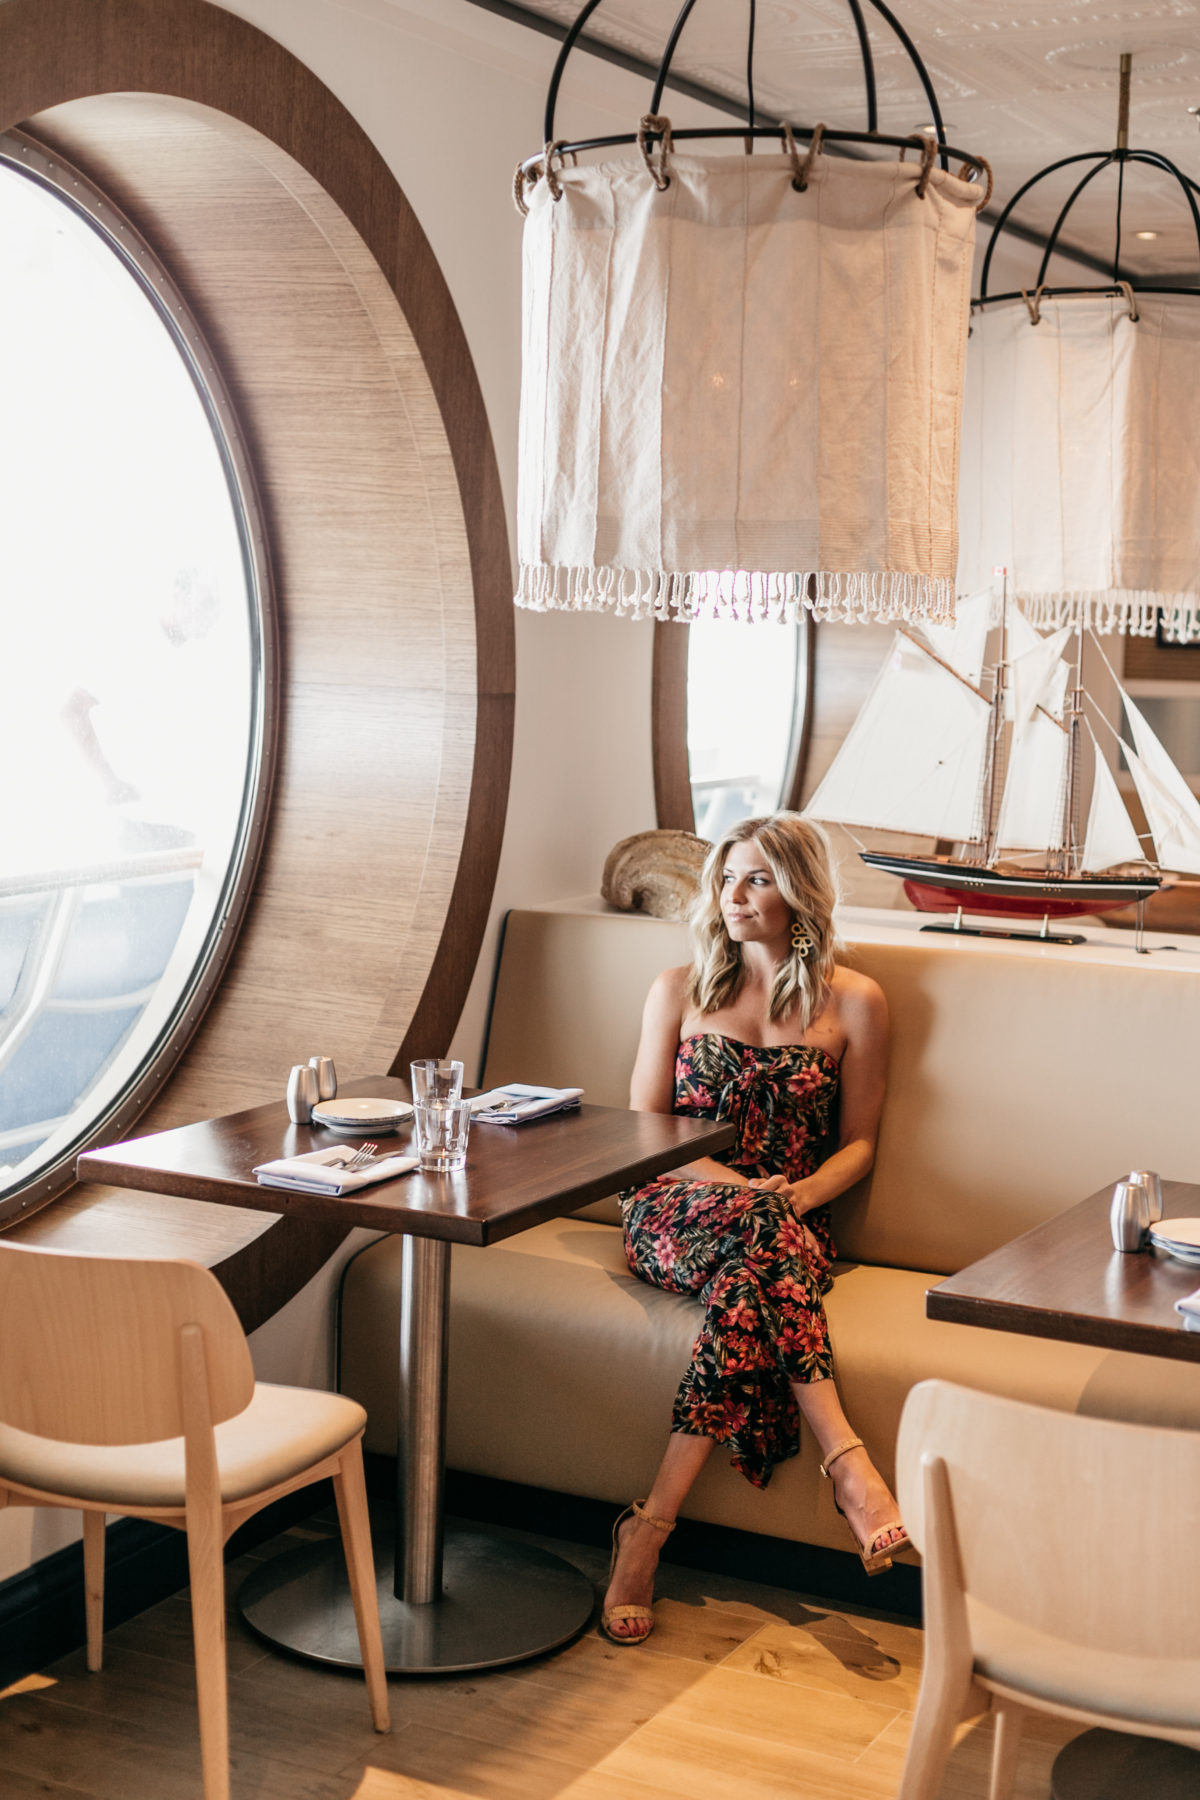 ROYAL CARIBBEAN CRUISE & A Cruise Outfit: Floral Printed Jumpsuit, Cork Heels, Acrylic Square Bag